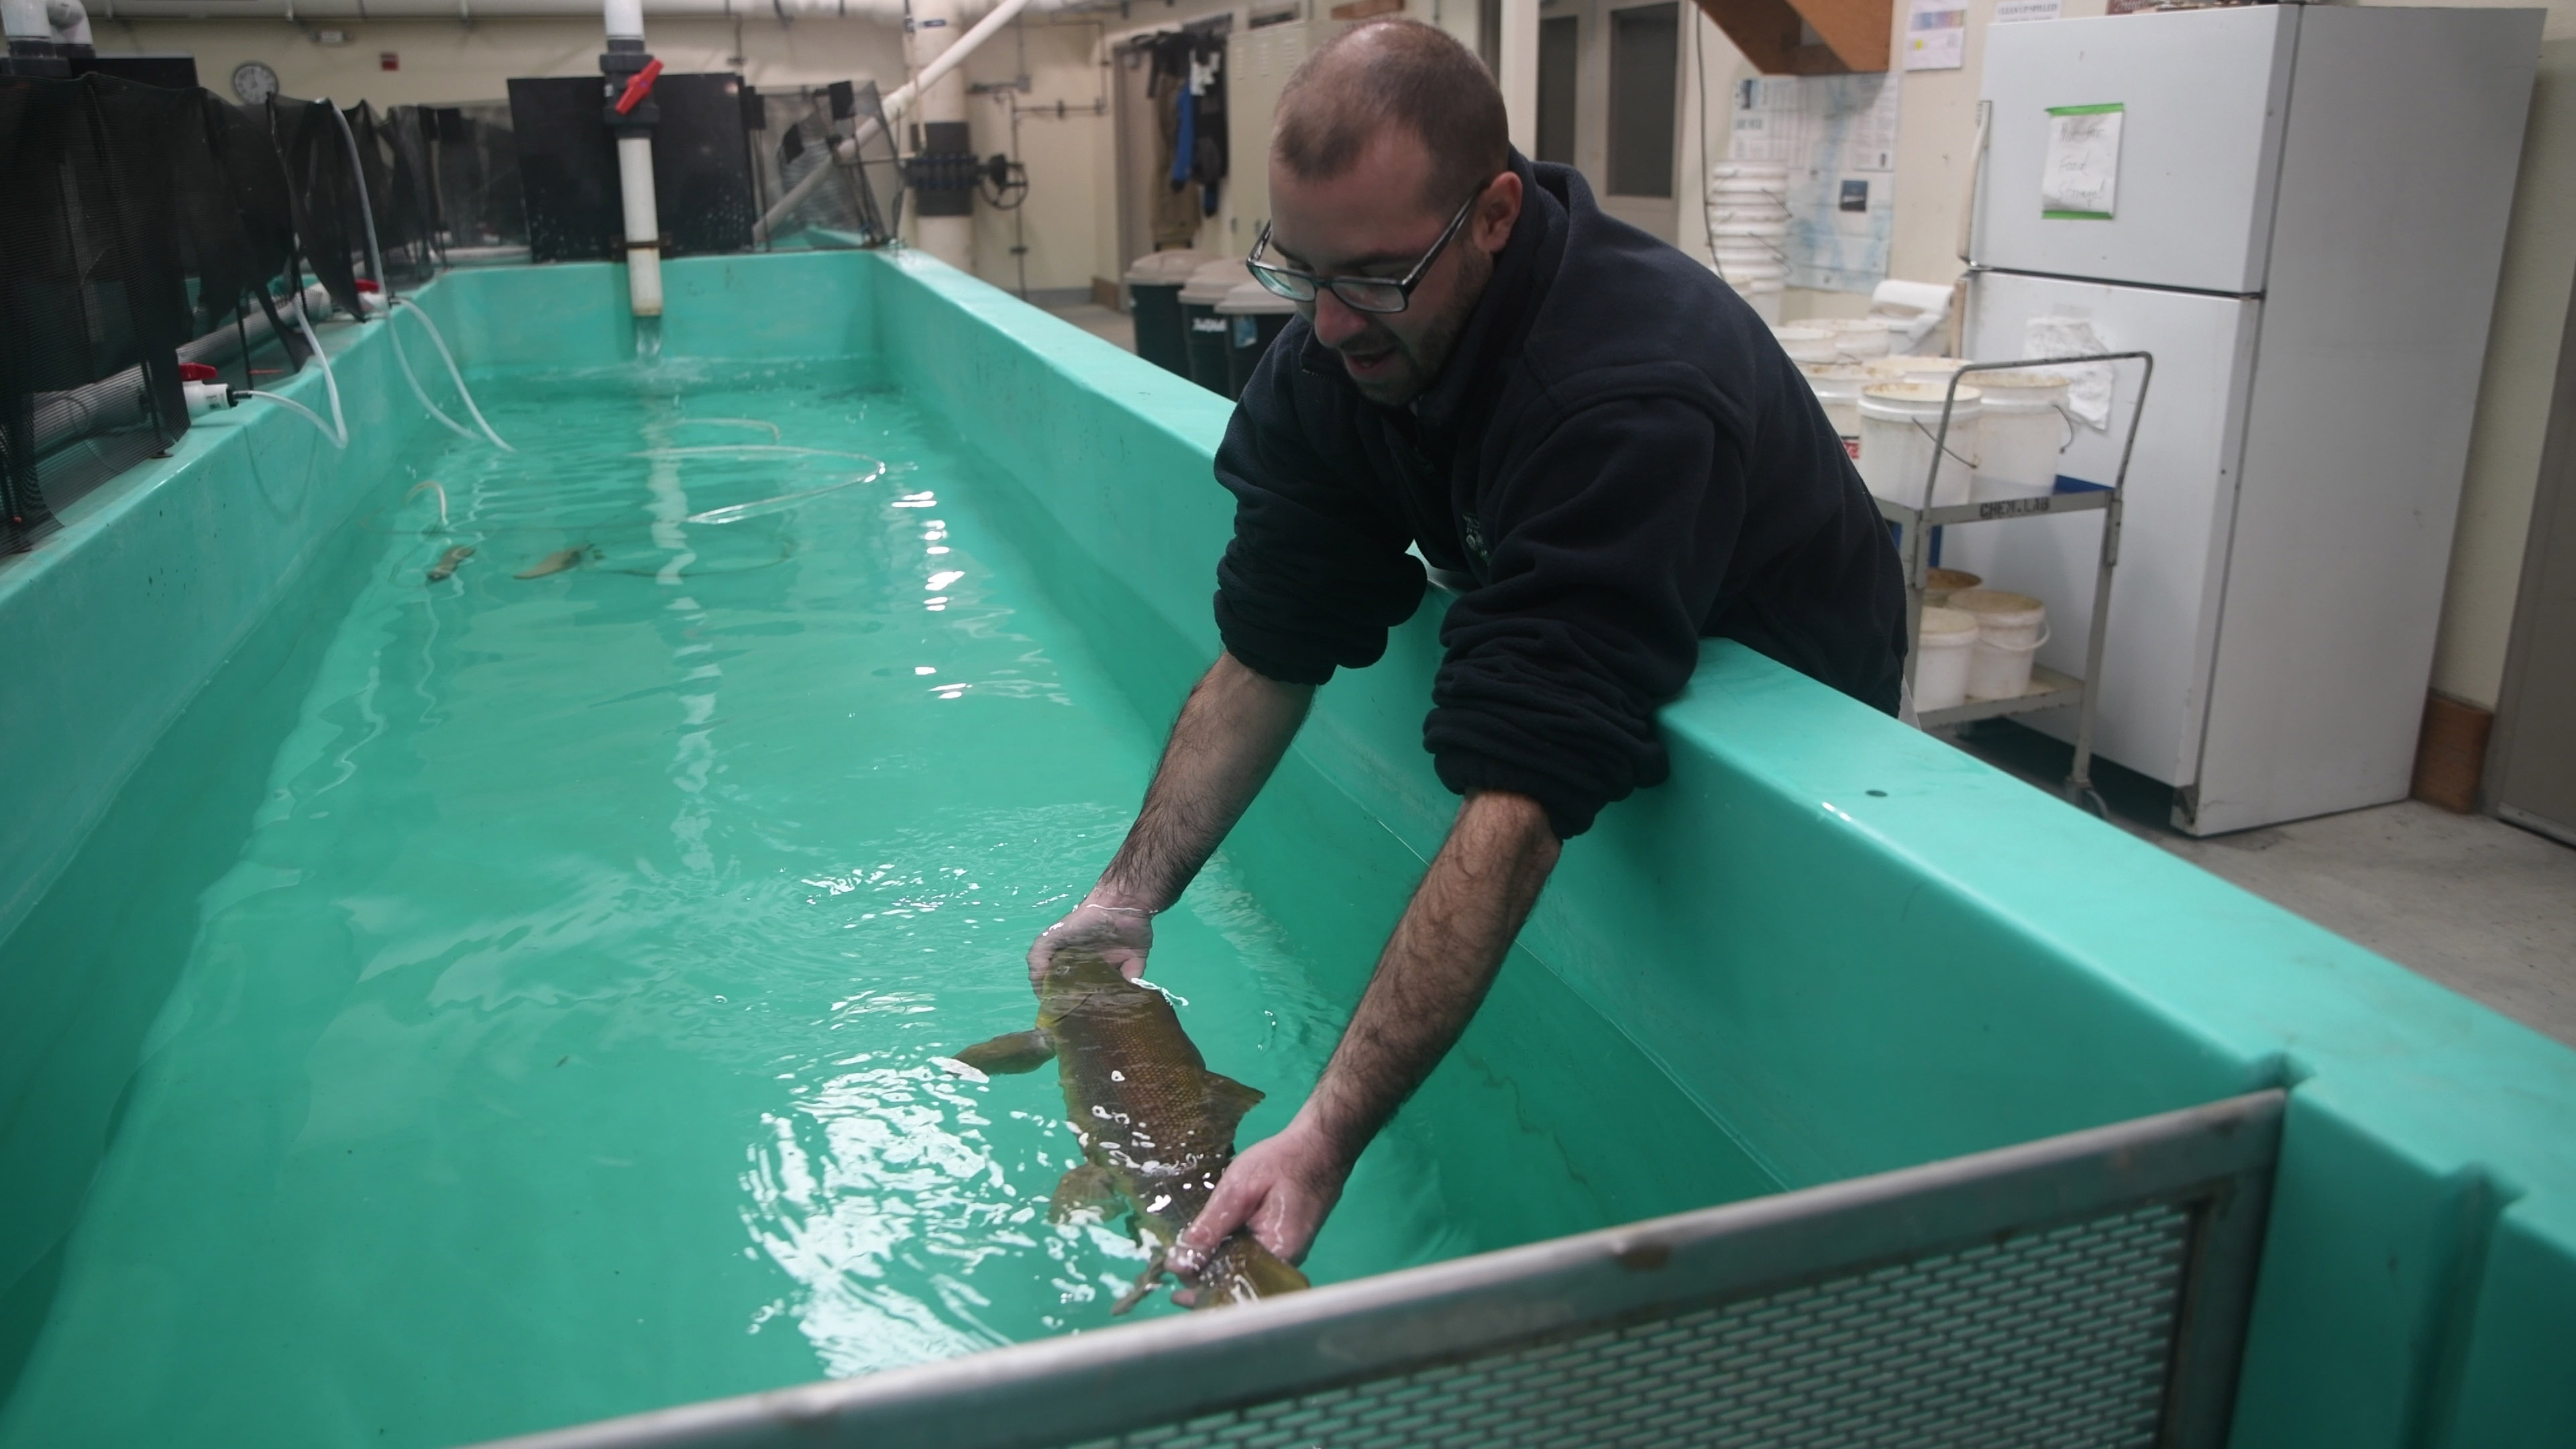 An endangered razorback sucker is placed in a recovery tank following a non-lethal fin ray sampling procedure. Photograph provided by Jamel Carry, Photographer, Lower Colorado Region.